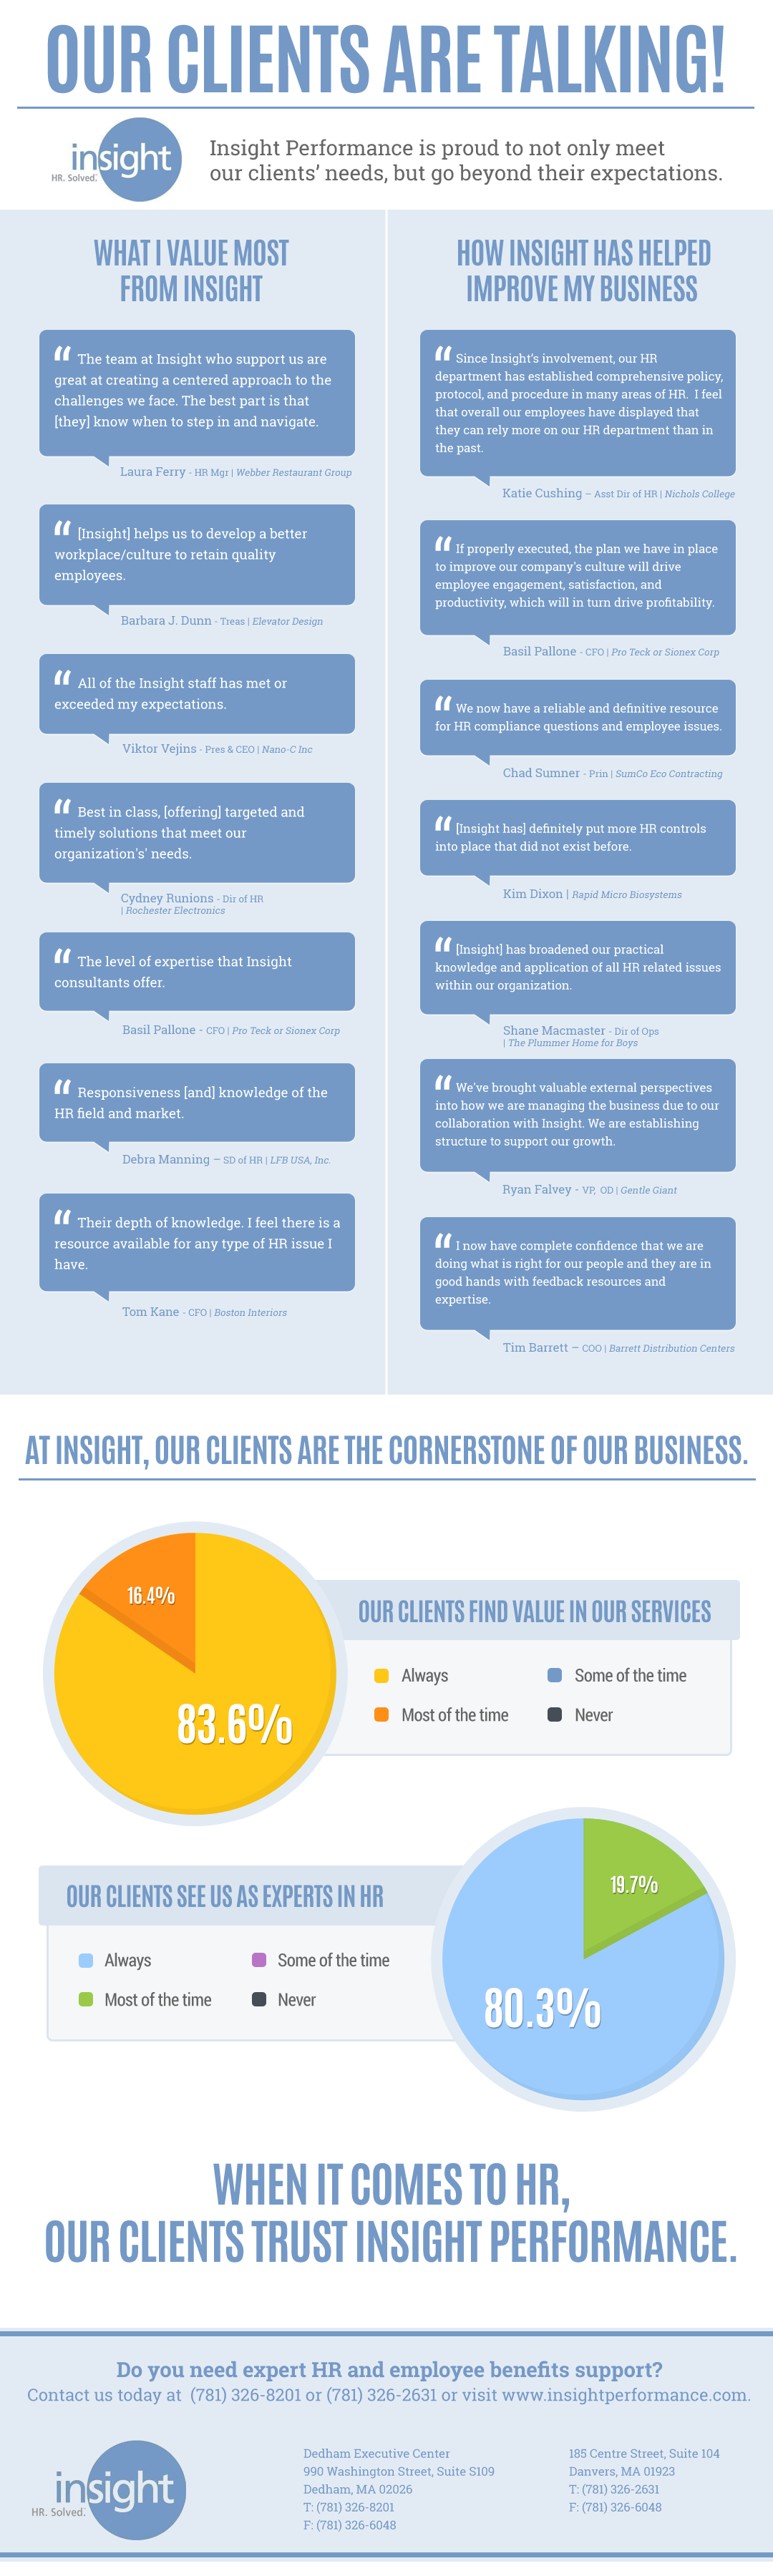 customer-satisfaction-infographic-survey